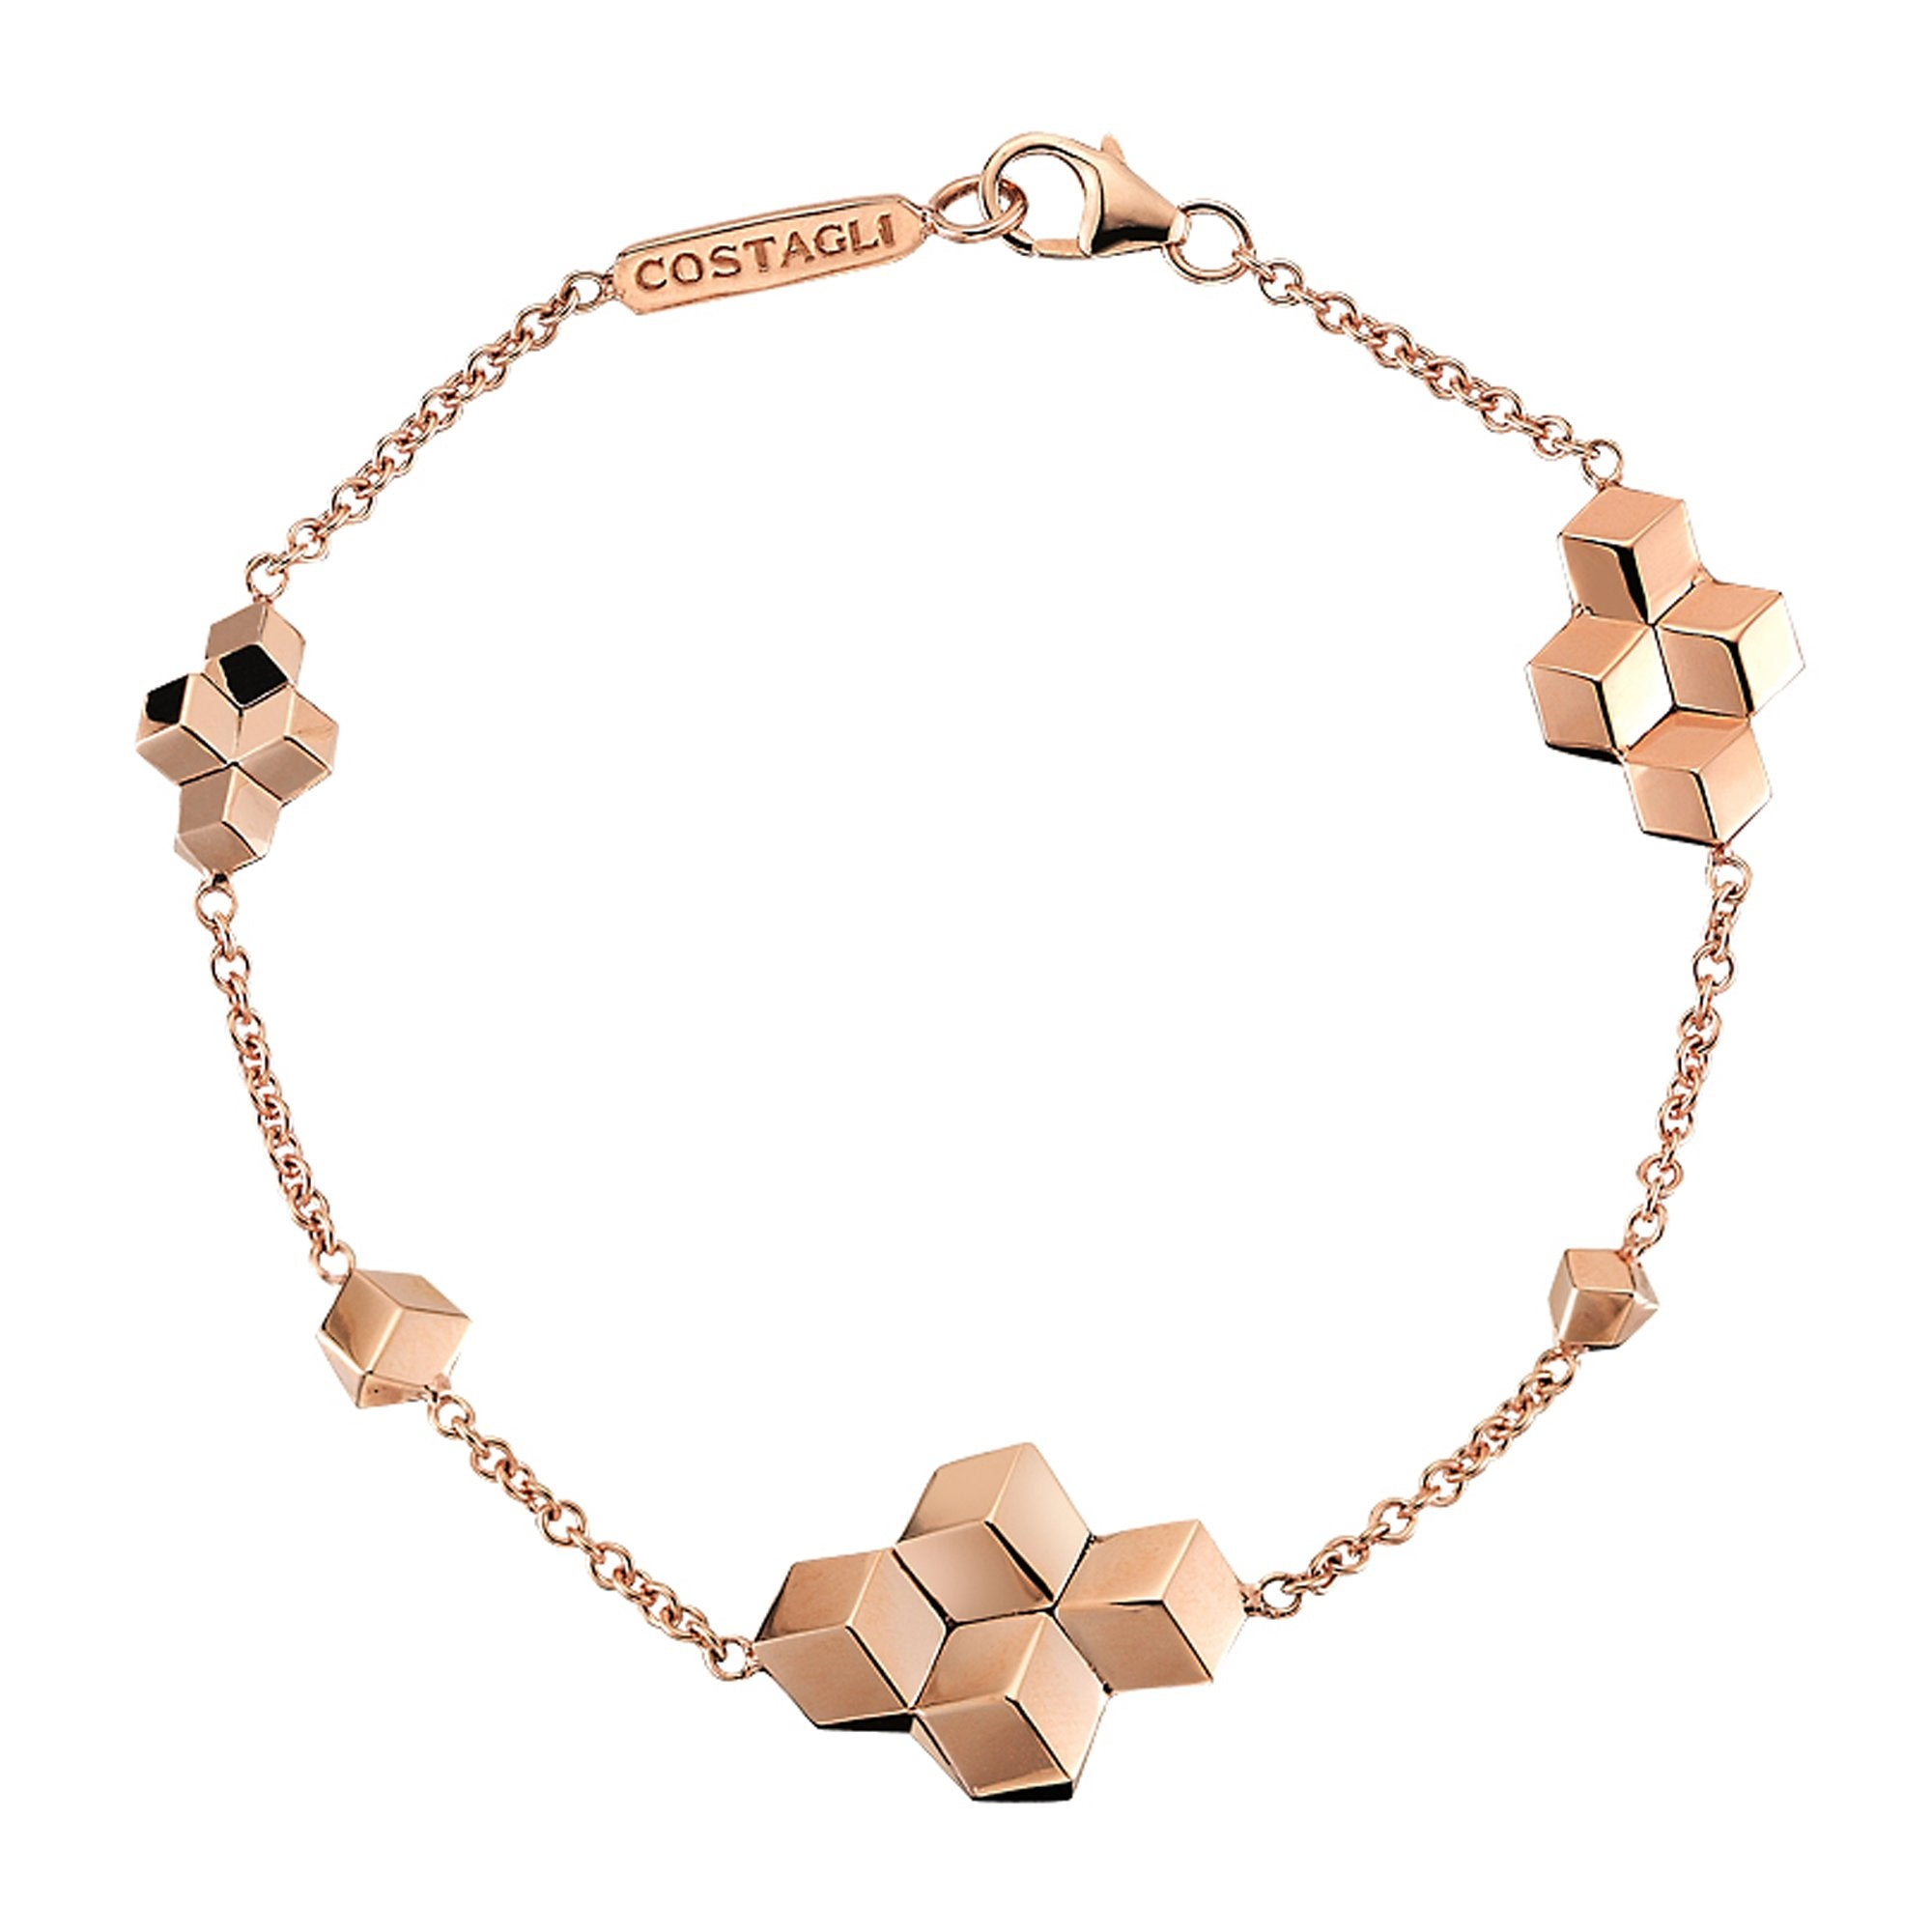 Rose Gold 'Brillante®' Station Bracelet - Paolo Costagli - 1